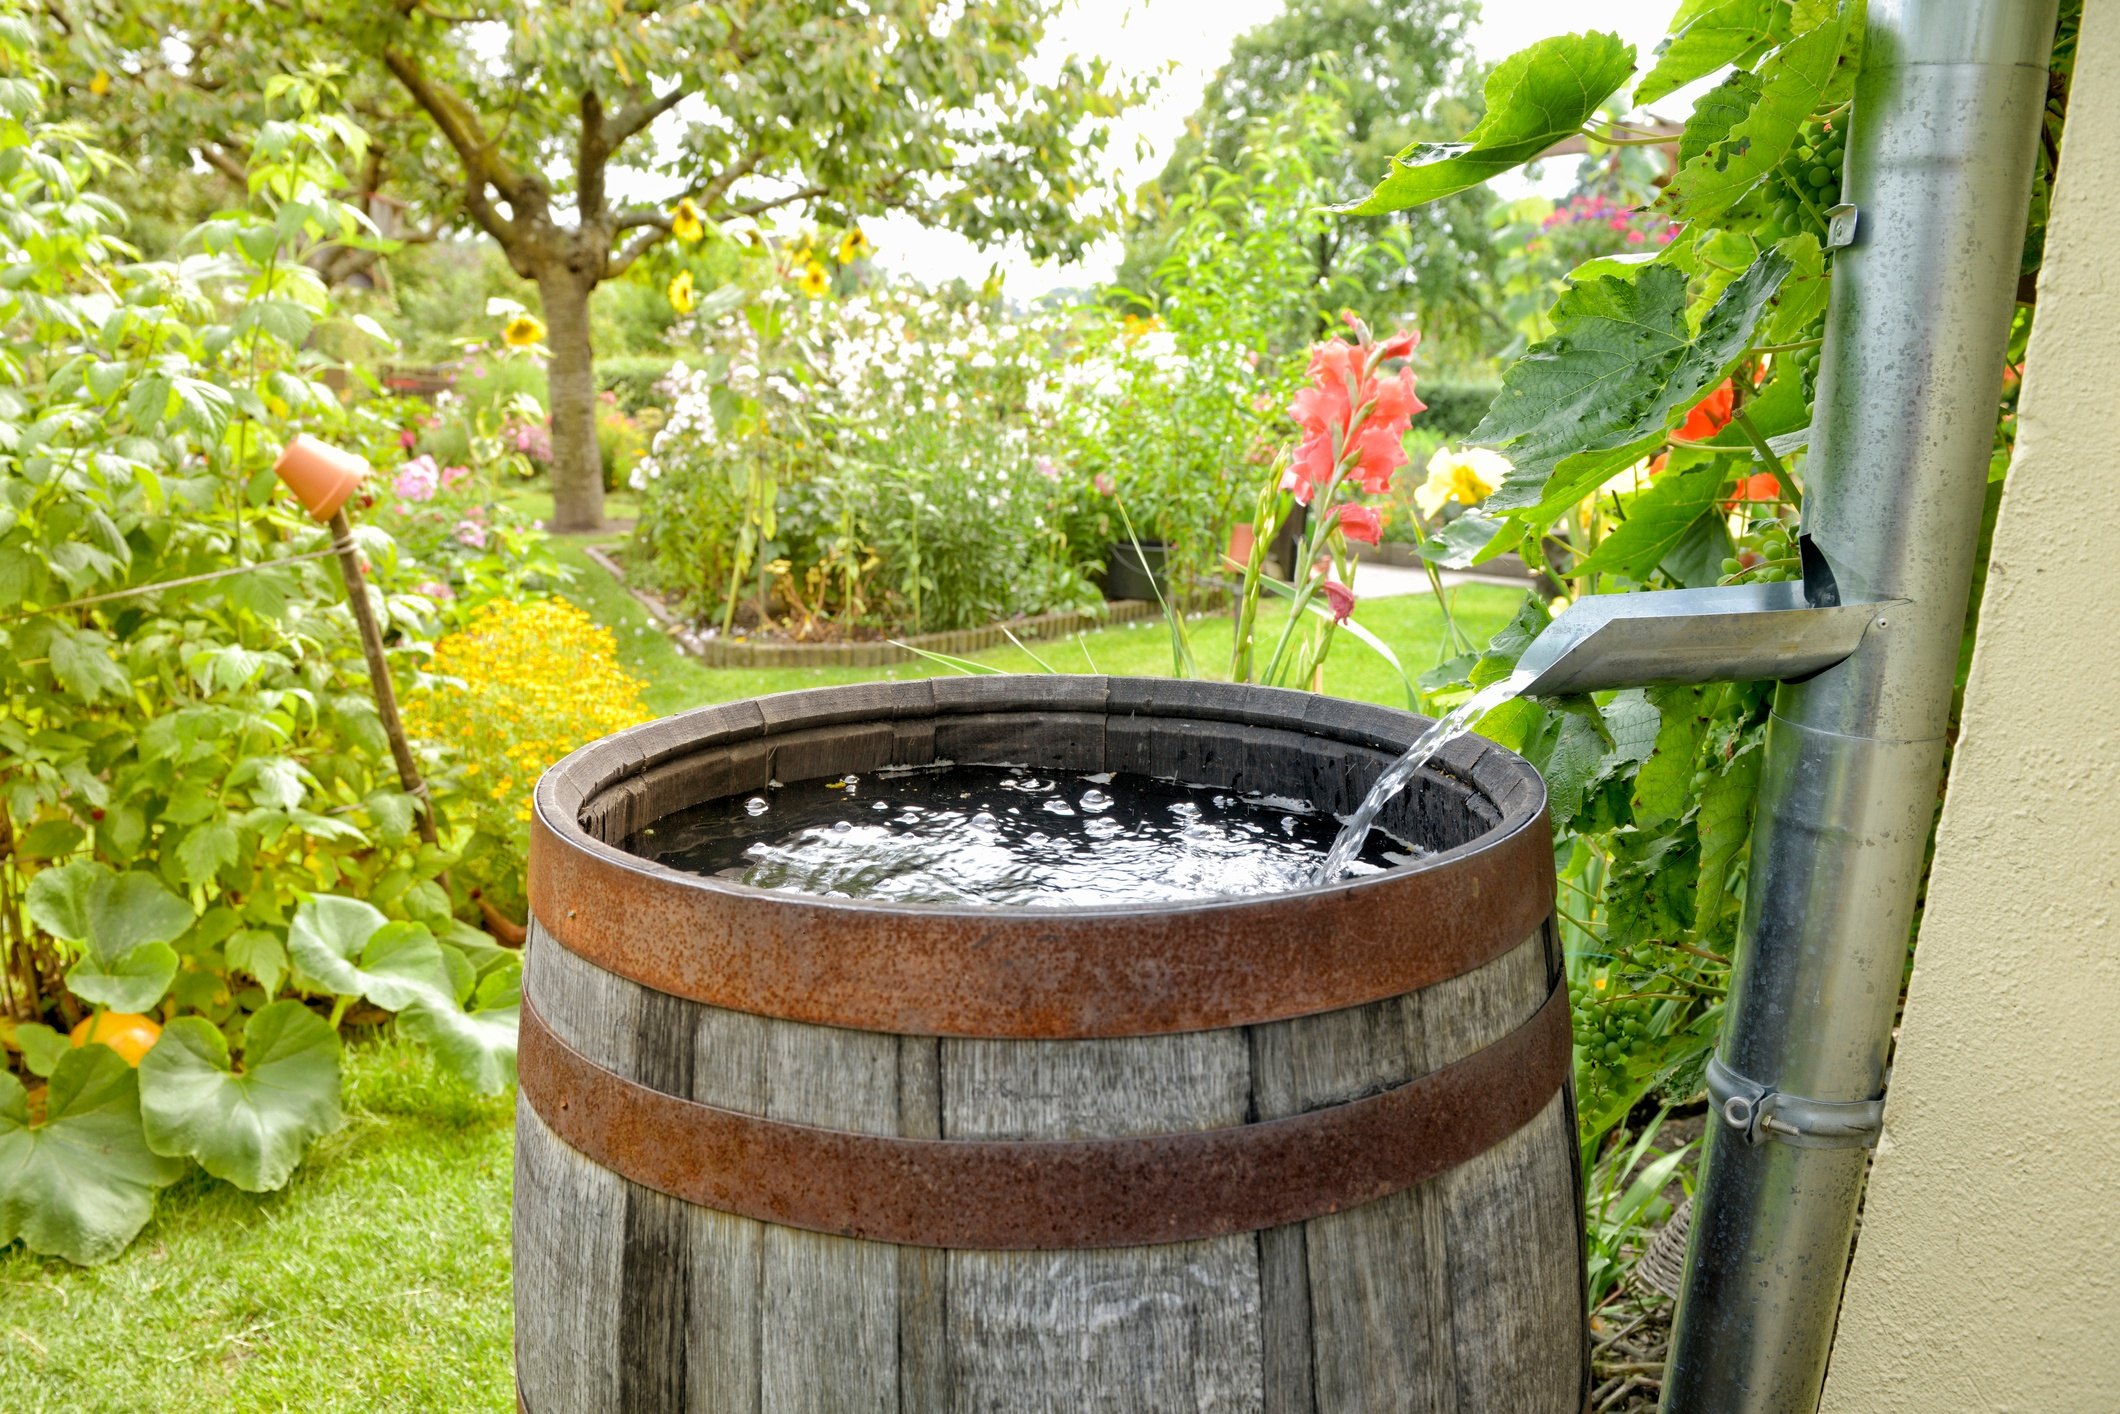 rain-water-conservation-rain barrel.jpg